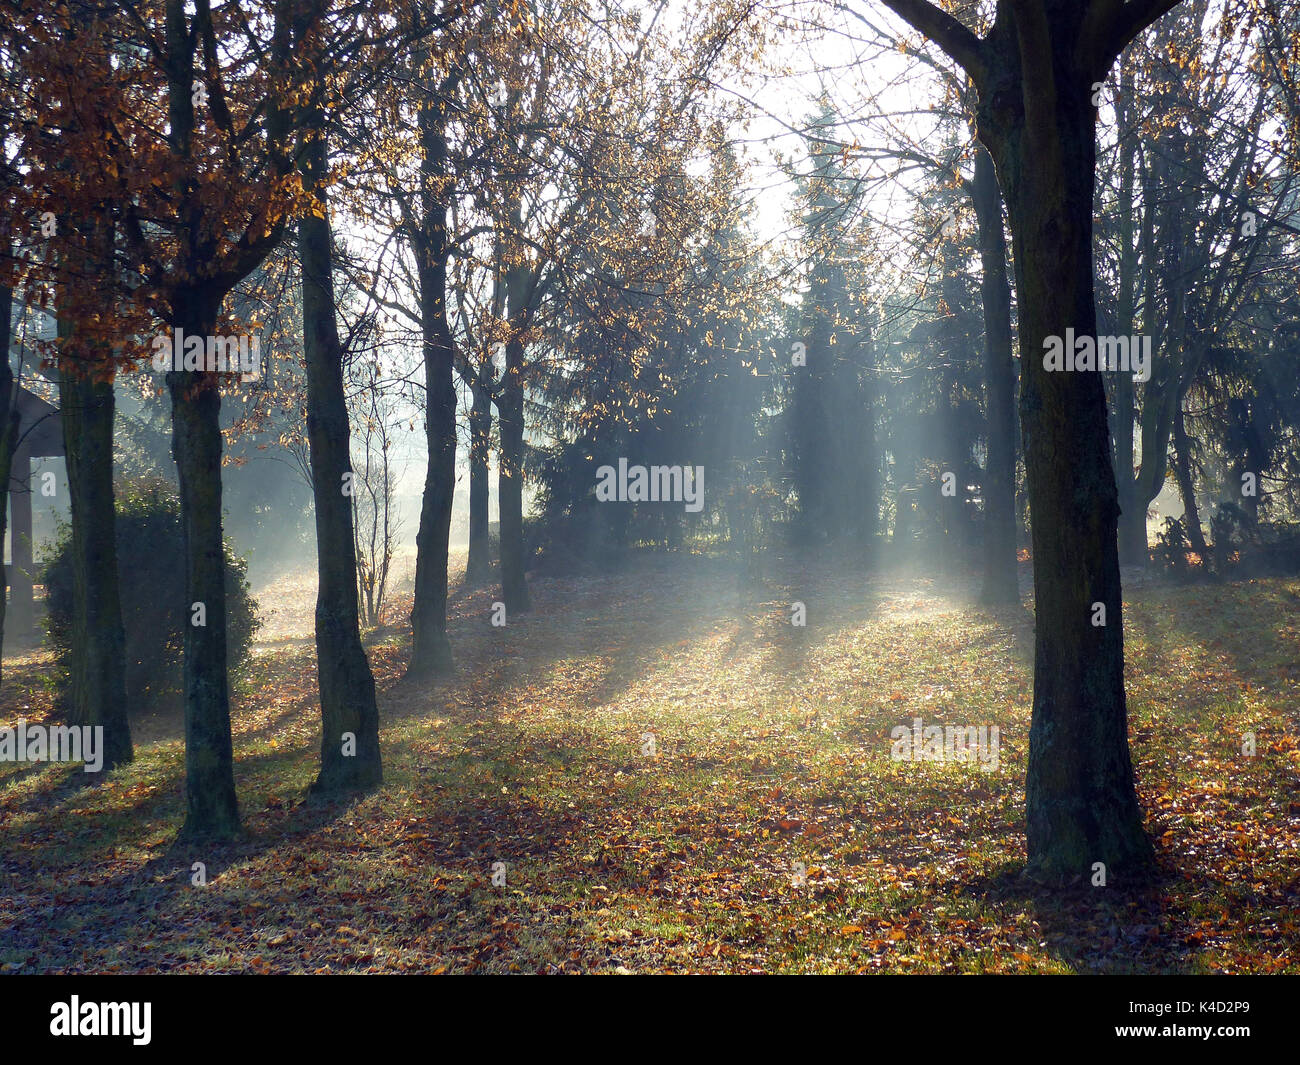 Sun Shines Through Some Trees In A Park - Stock Image